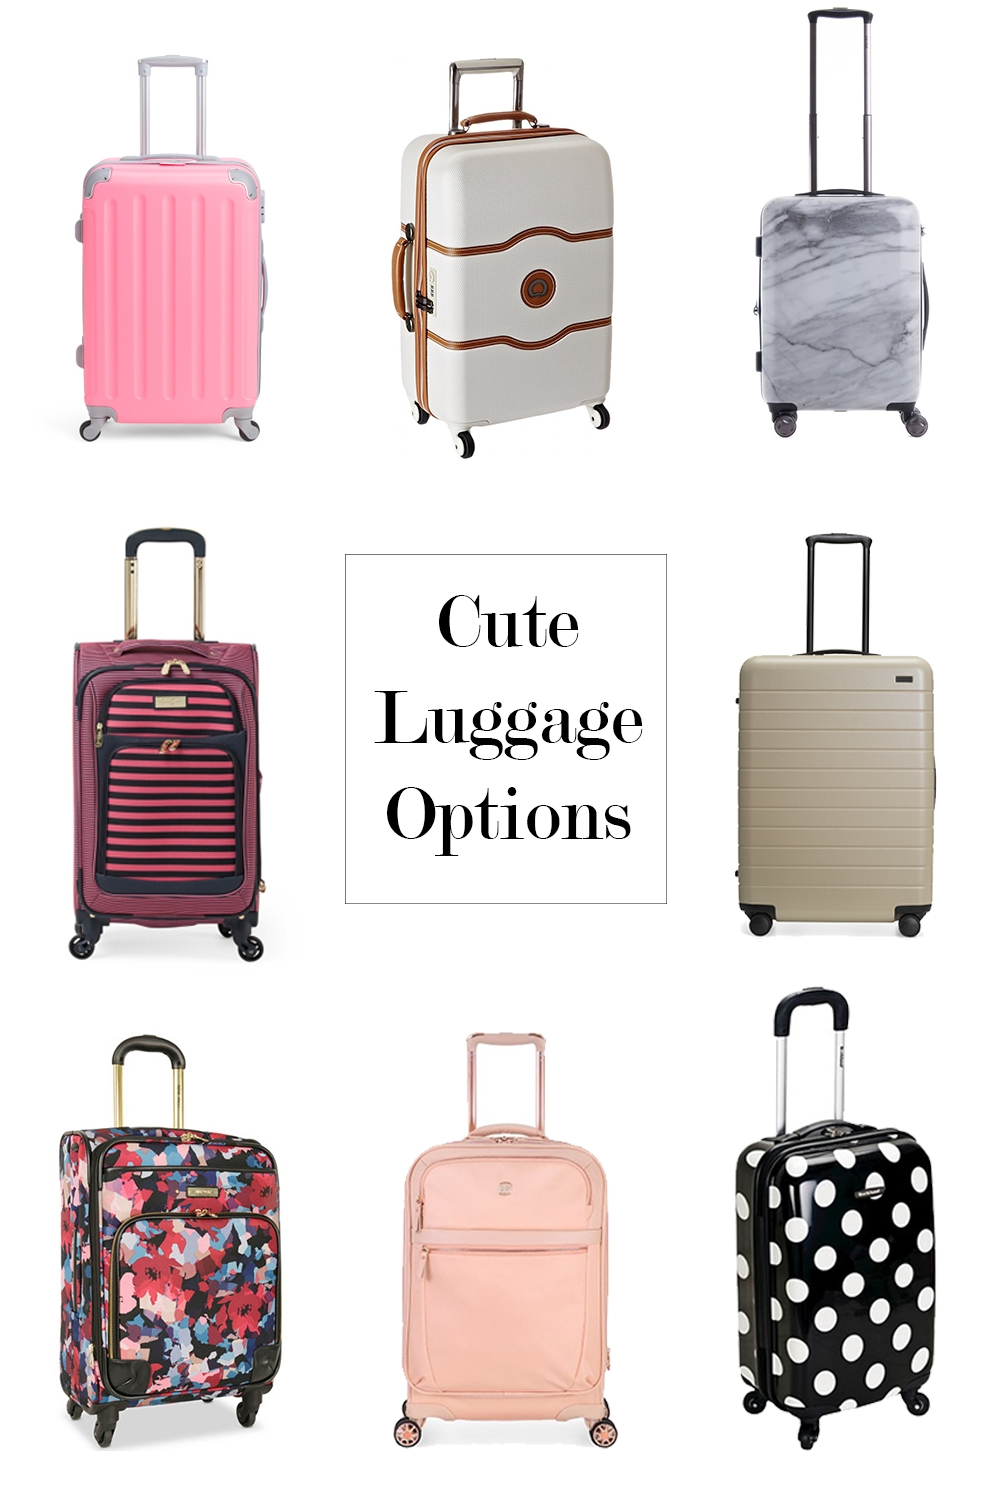 Cute Luggage Options - Seventeen Dresses